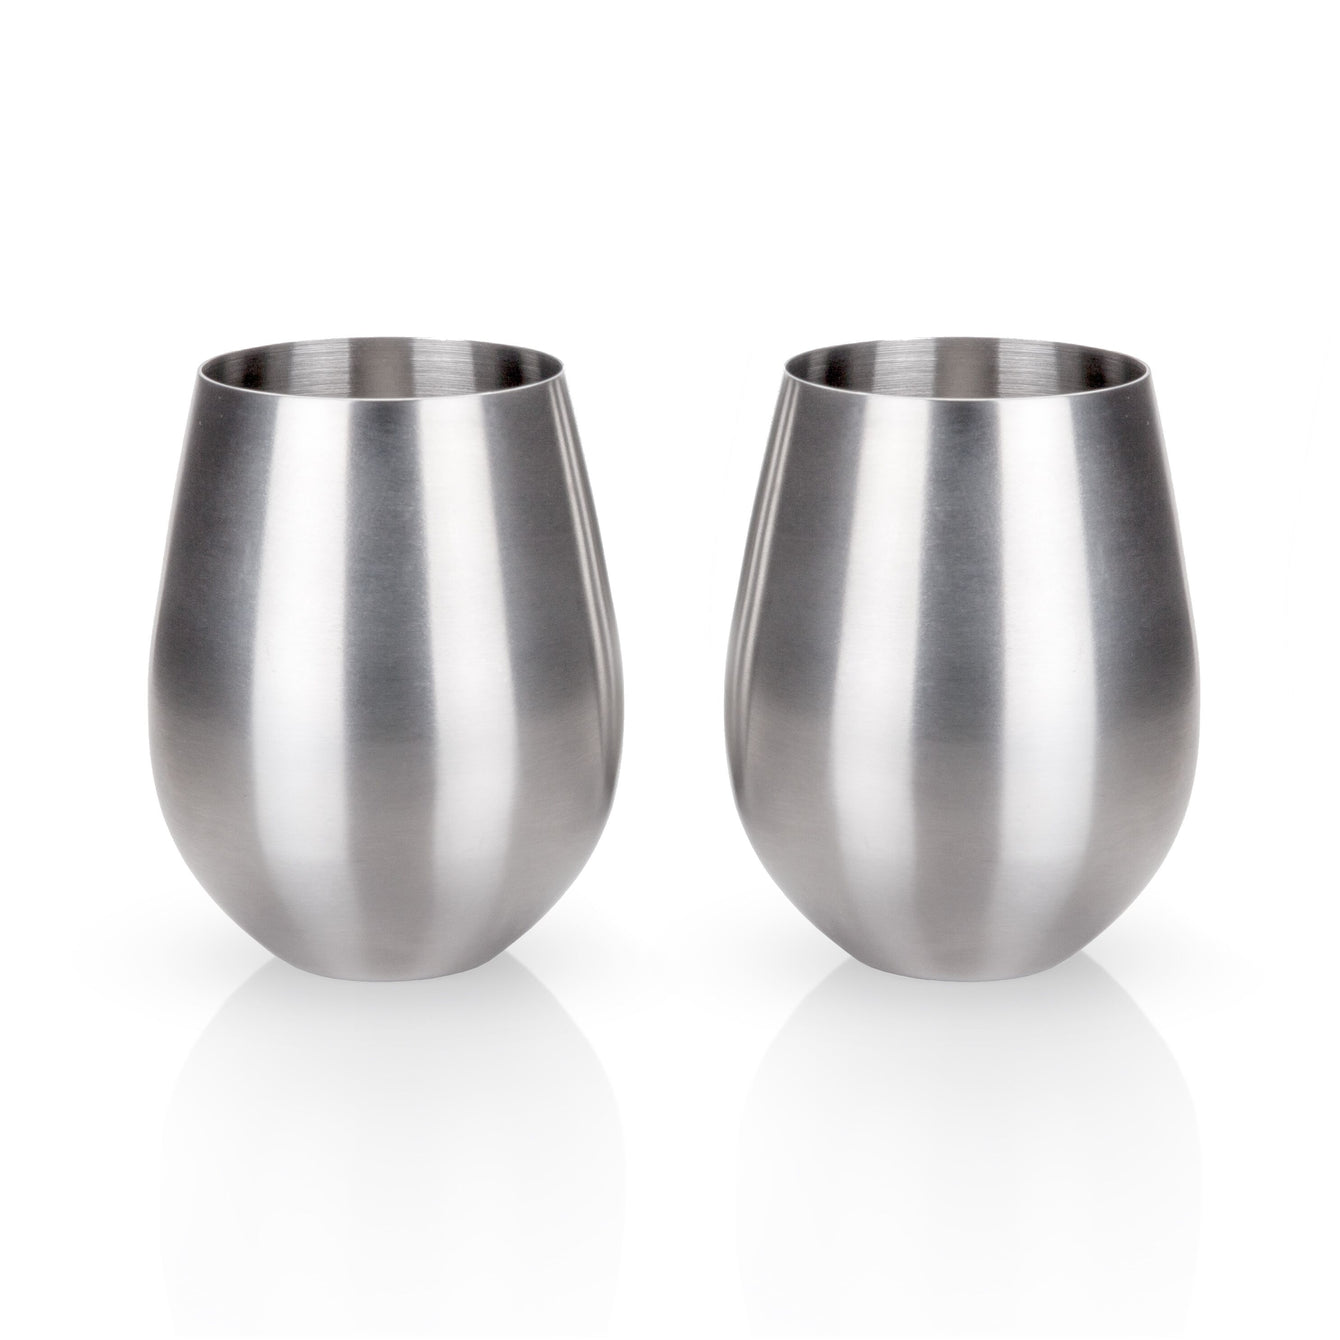 Admiral Stainless Steel Tumblers Set-Home - Entertaining - Cocktail Glasses Sets-VISKI-Peccadilly